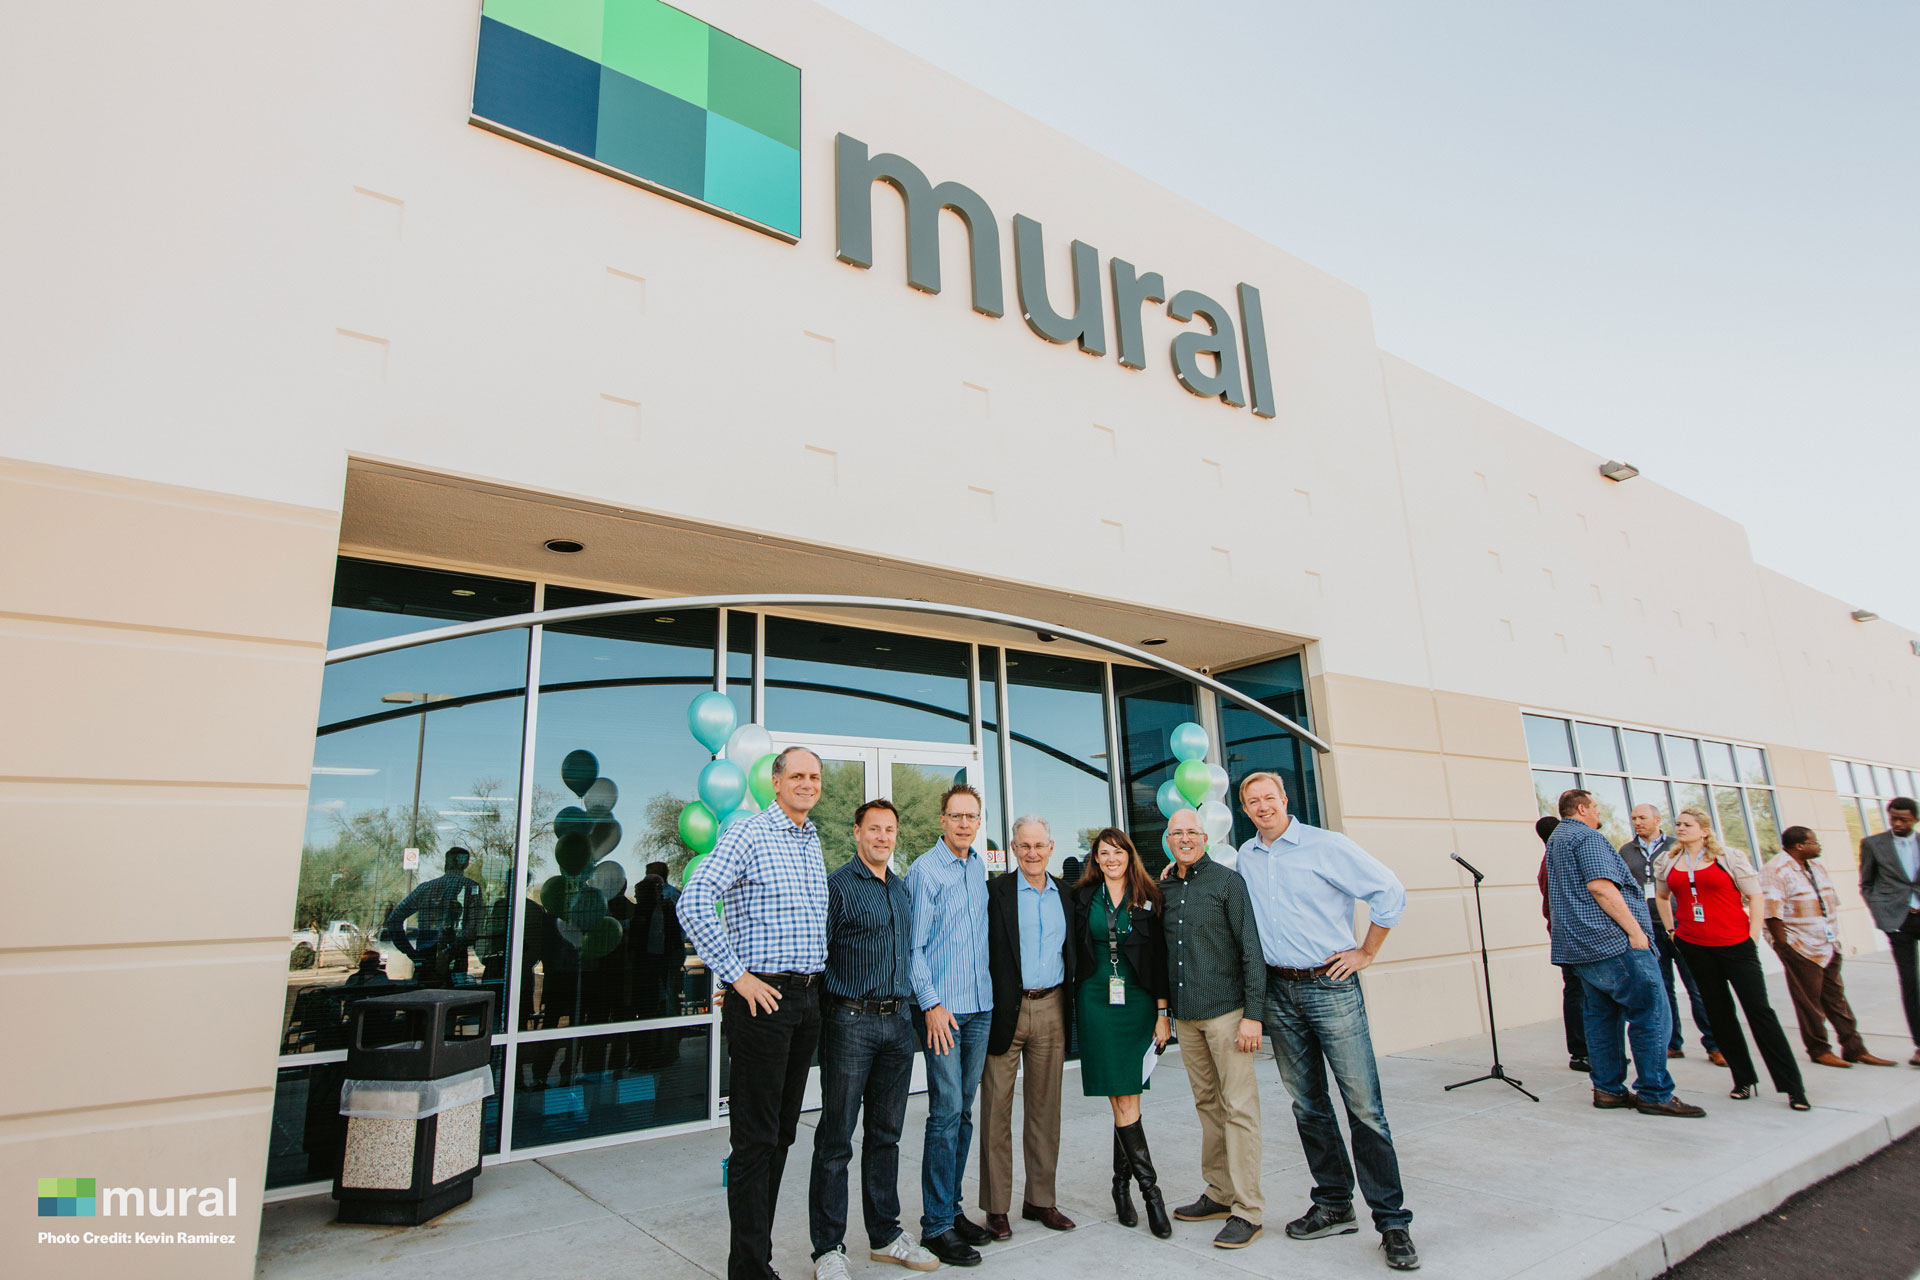 Mural Ribbon Cutting Ceremony